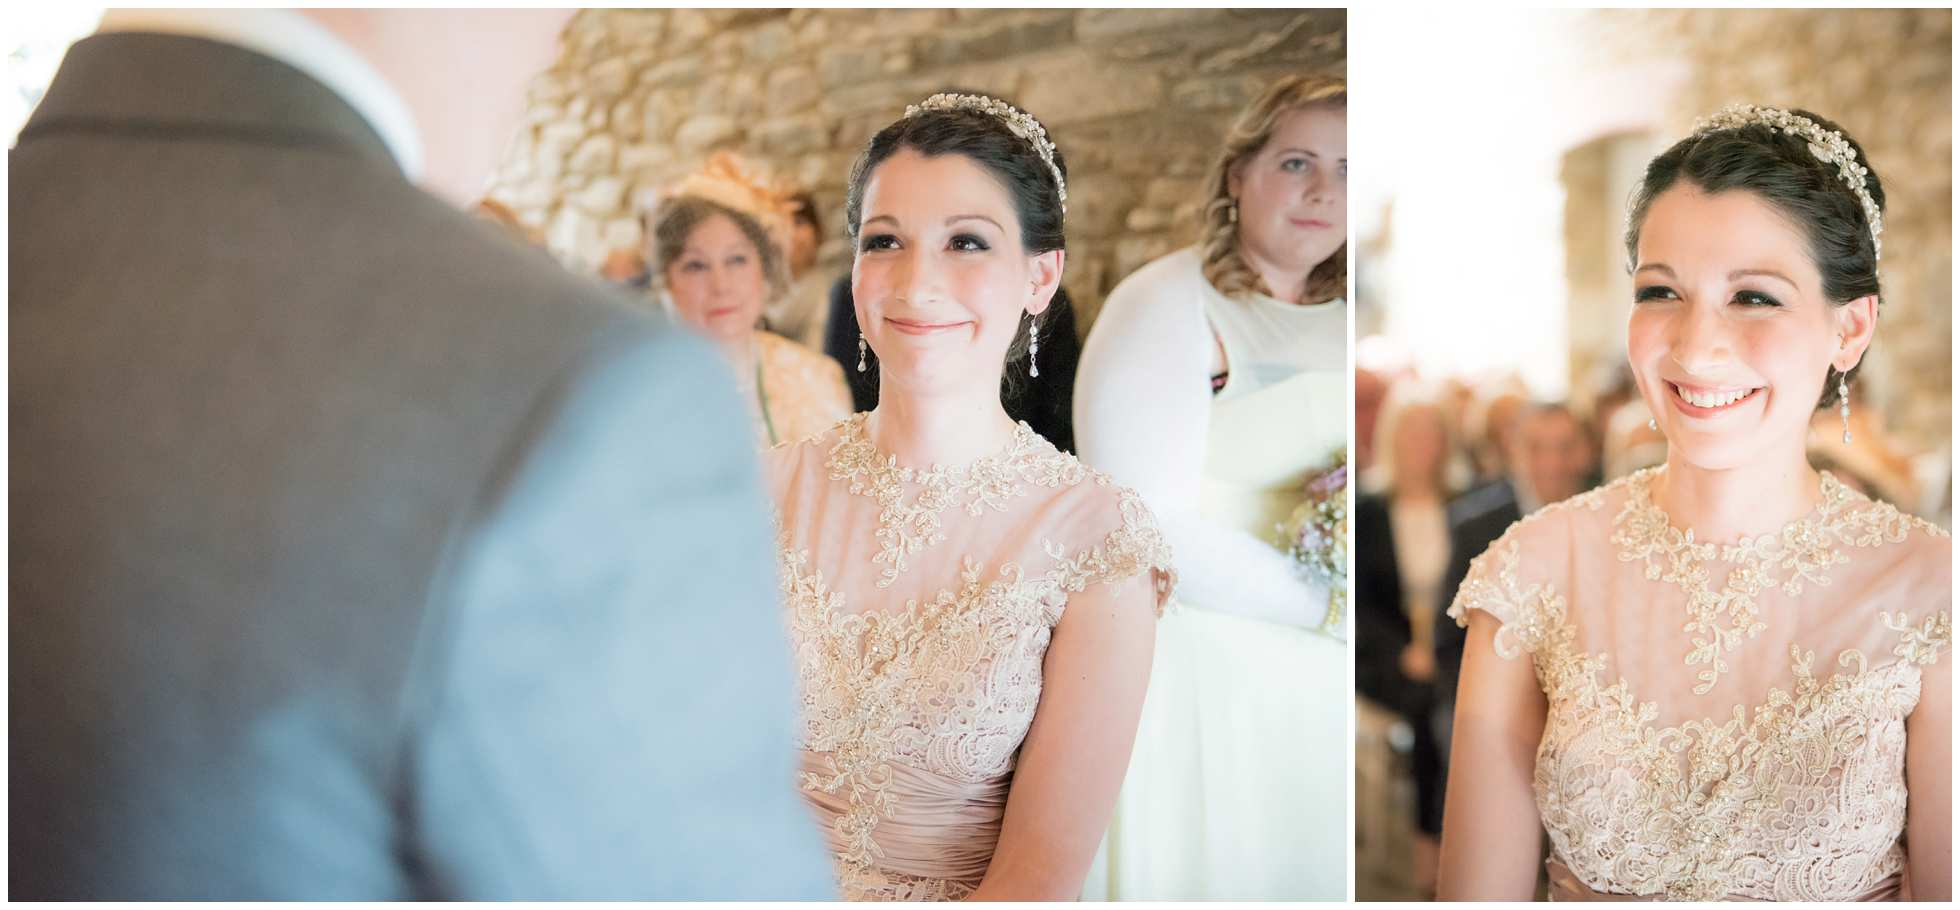 Bride glowing with happiness at Trevena Wedding Photography in Cornwall